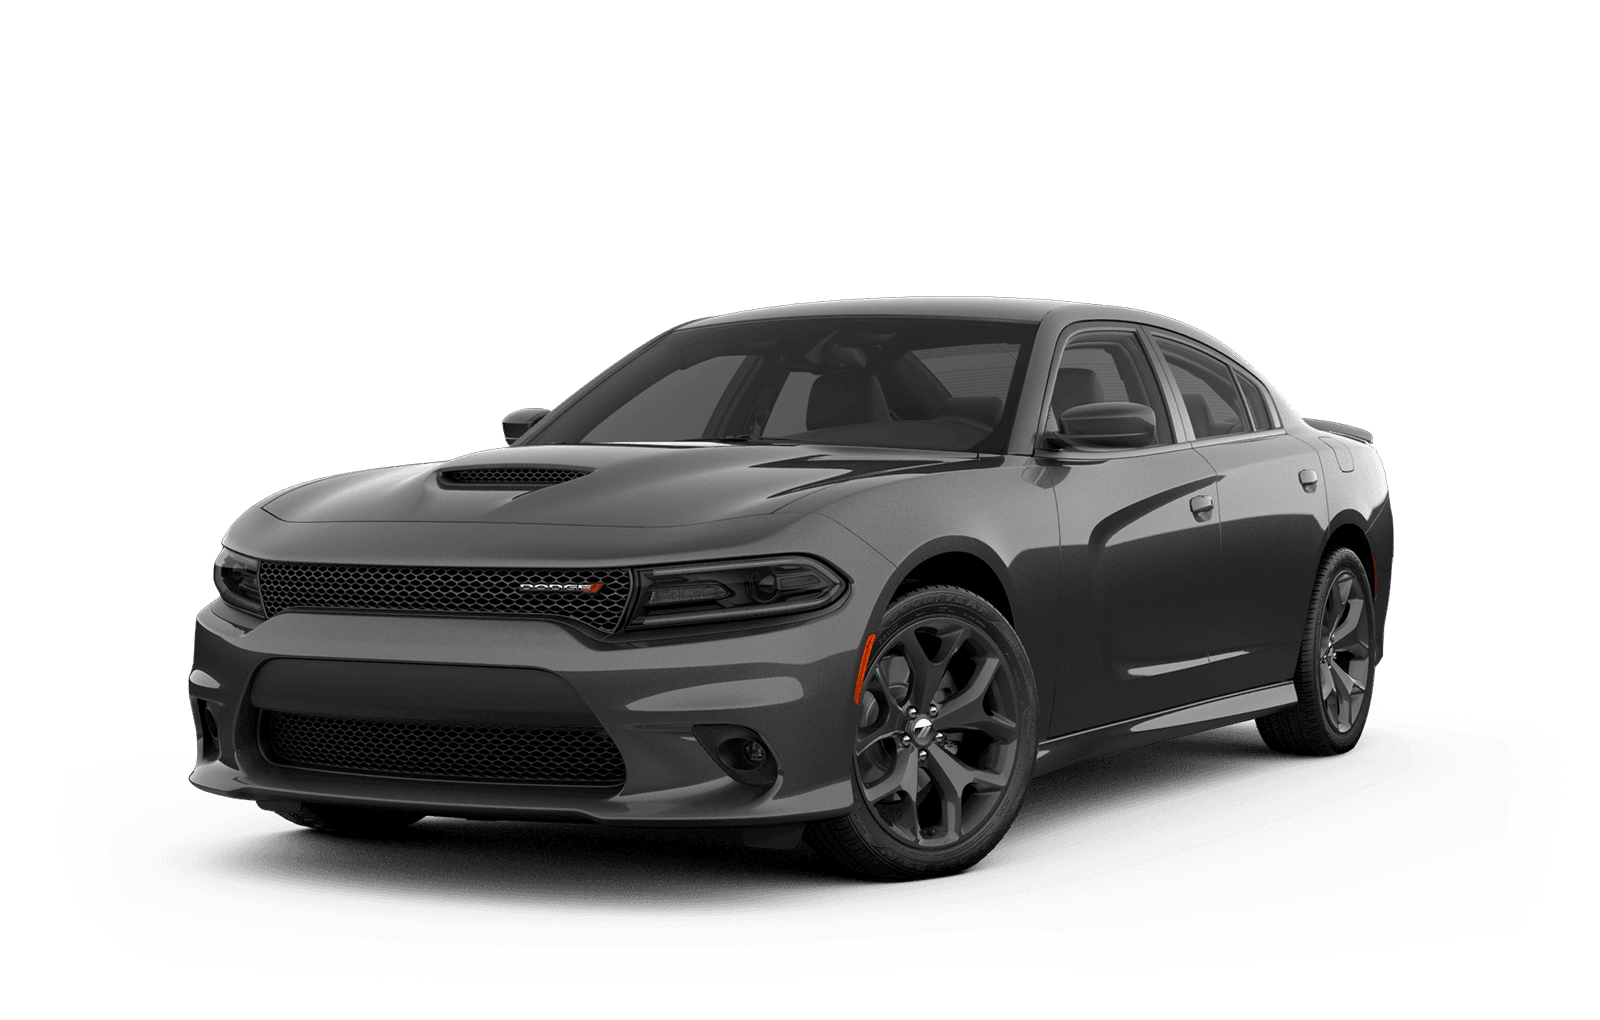 49 Great Best Release Date For 2019 Dodge Charger Price And Review Specs with Best Release Date For 2019 Dodge Charger Price And Review